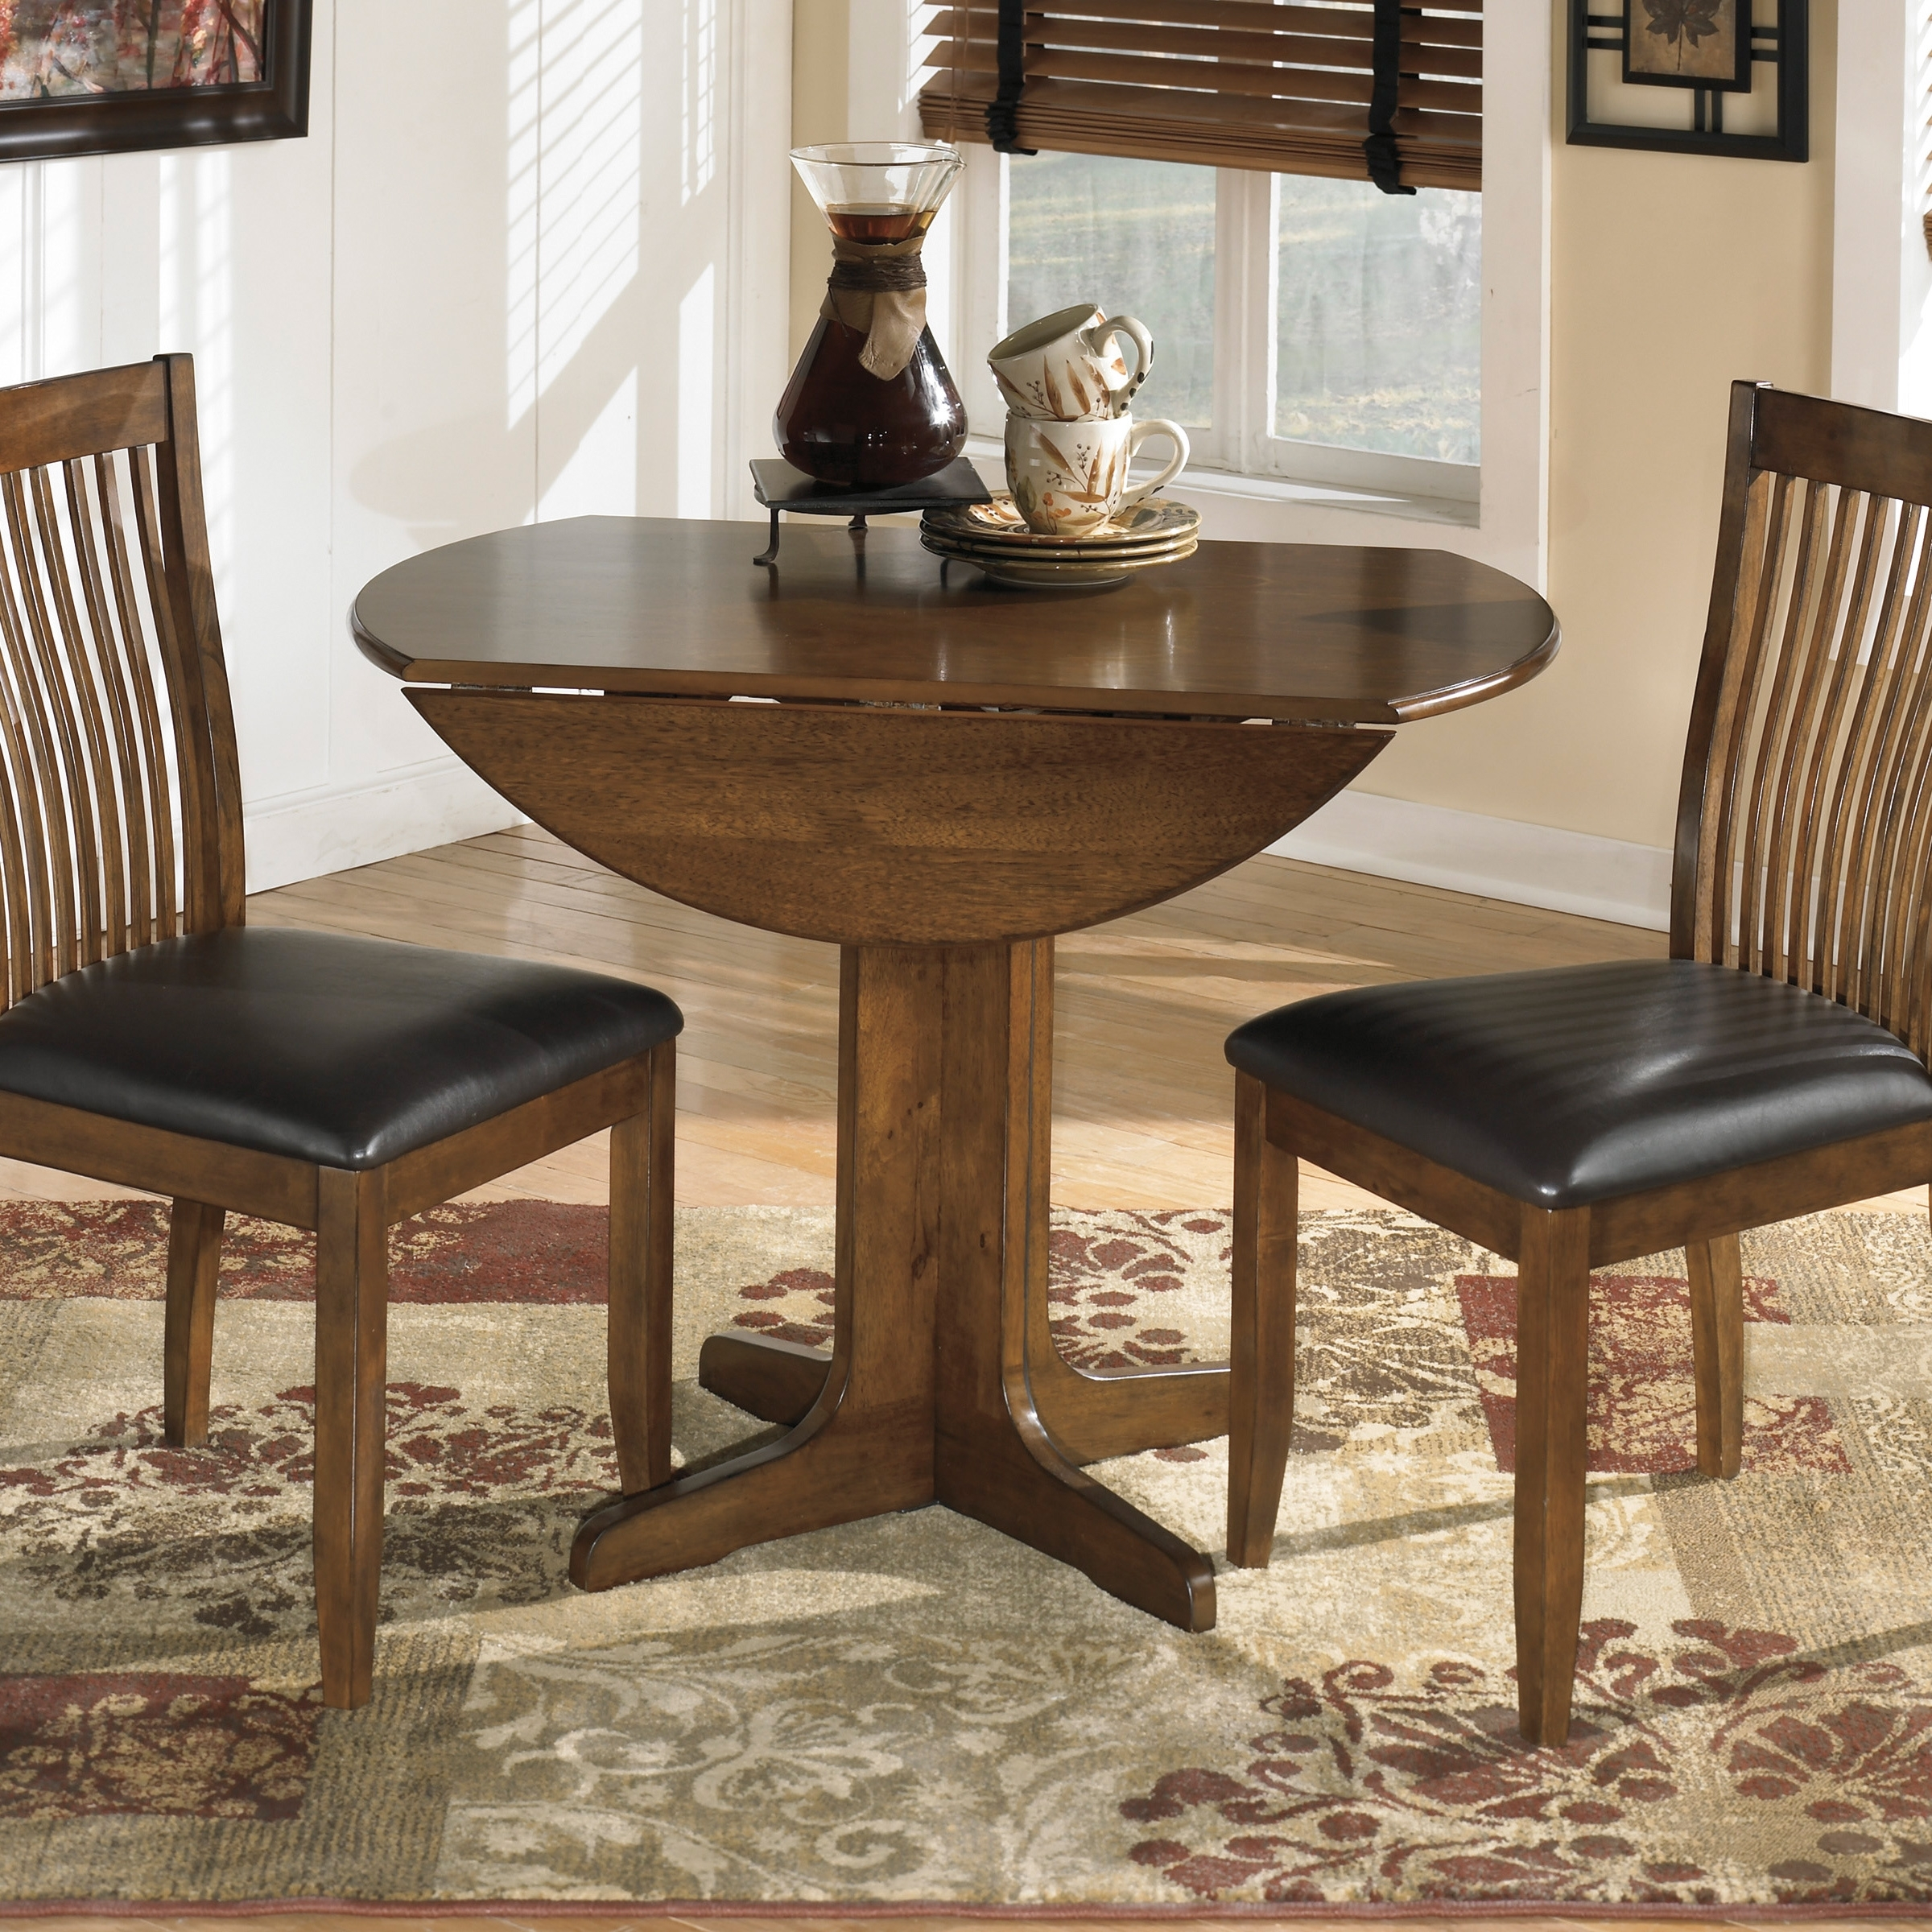 Fashionable Cool Small Round Dining Table Throughout Small Dark Wood Dining Tables (View 6 of 25)